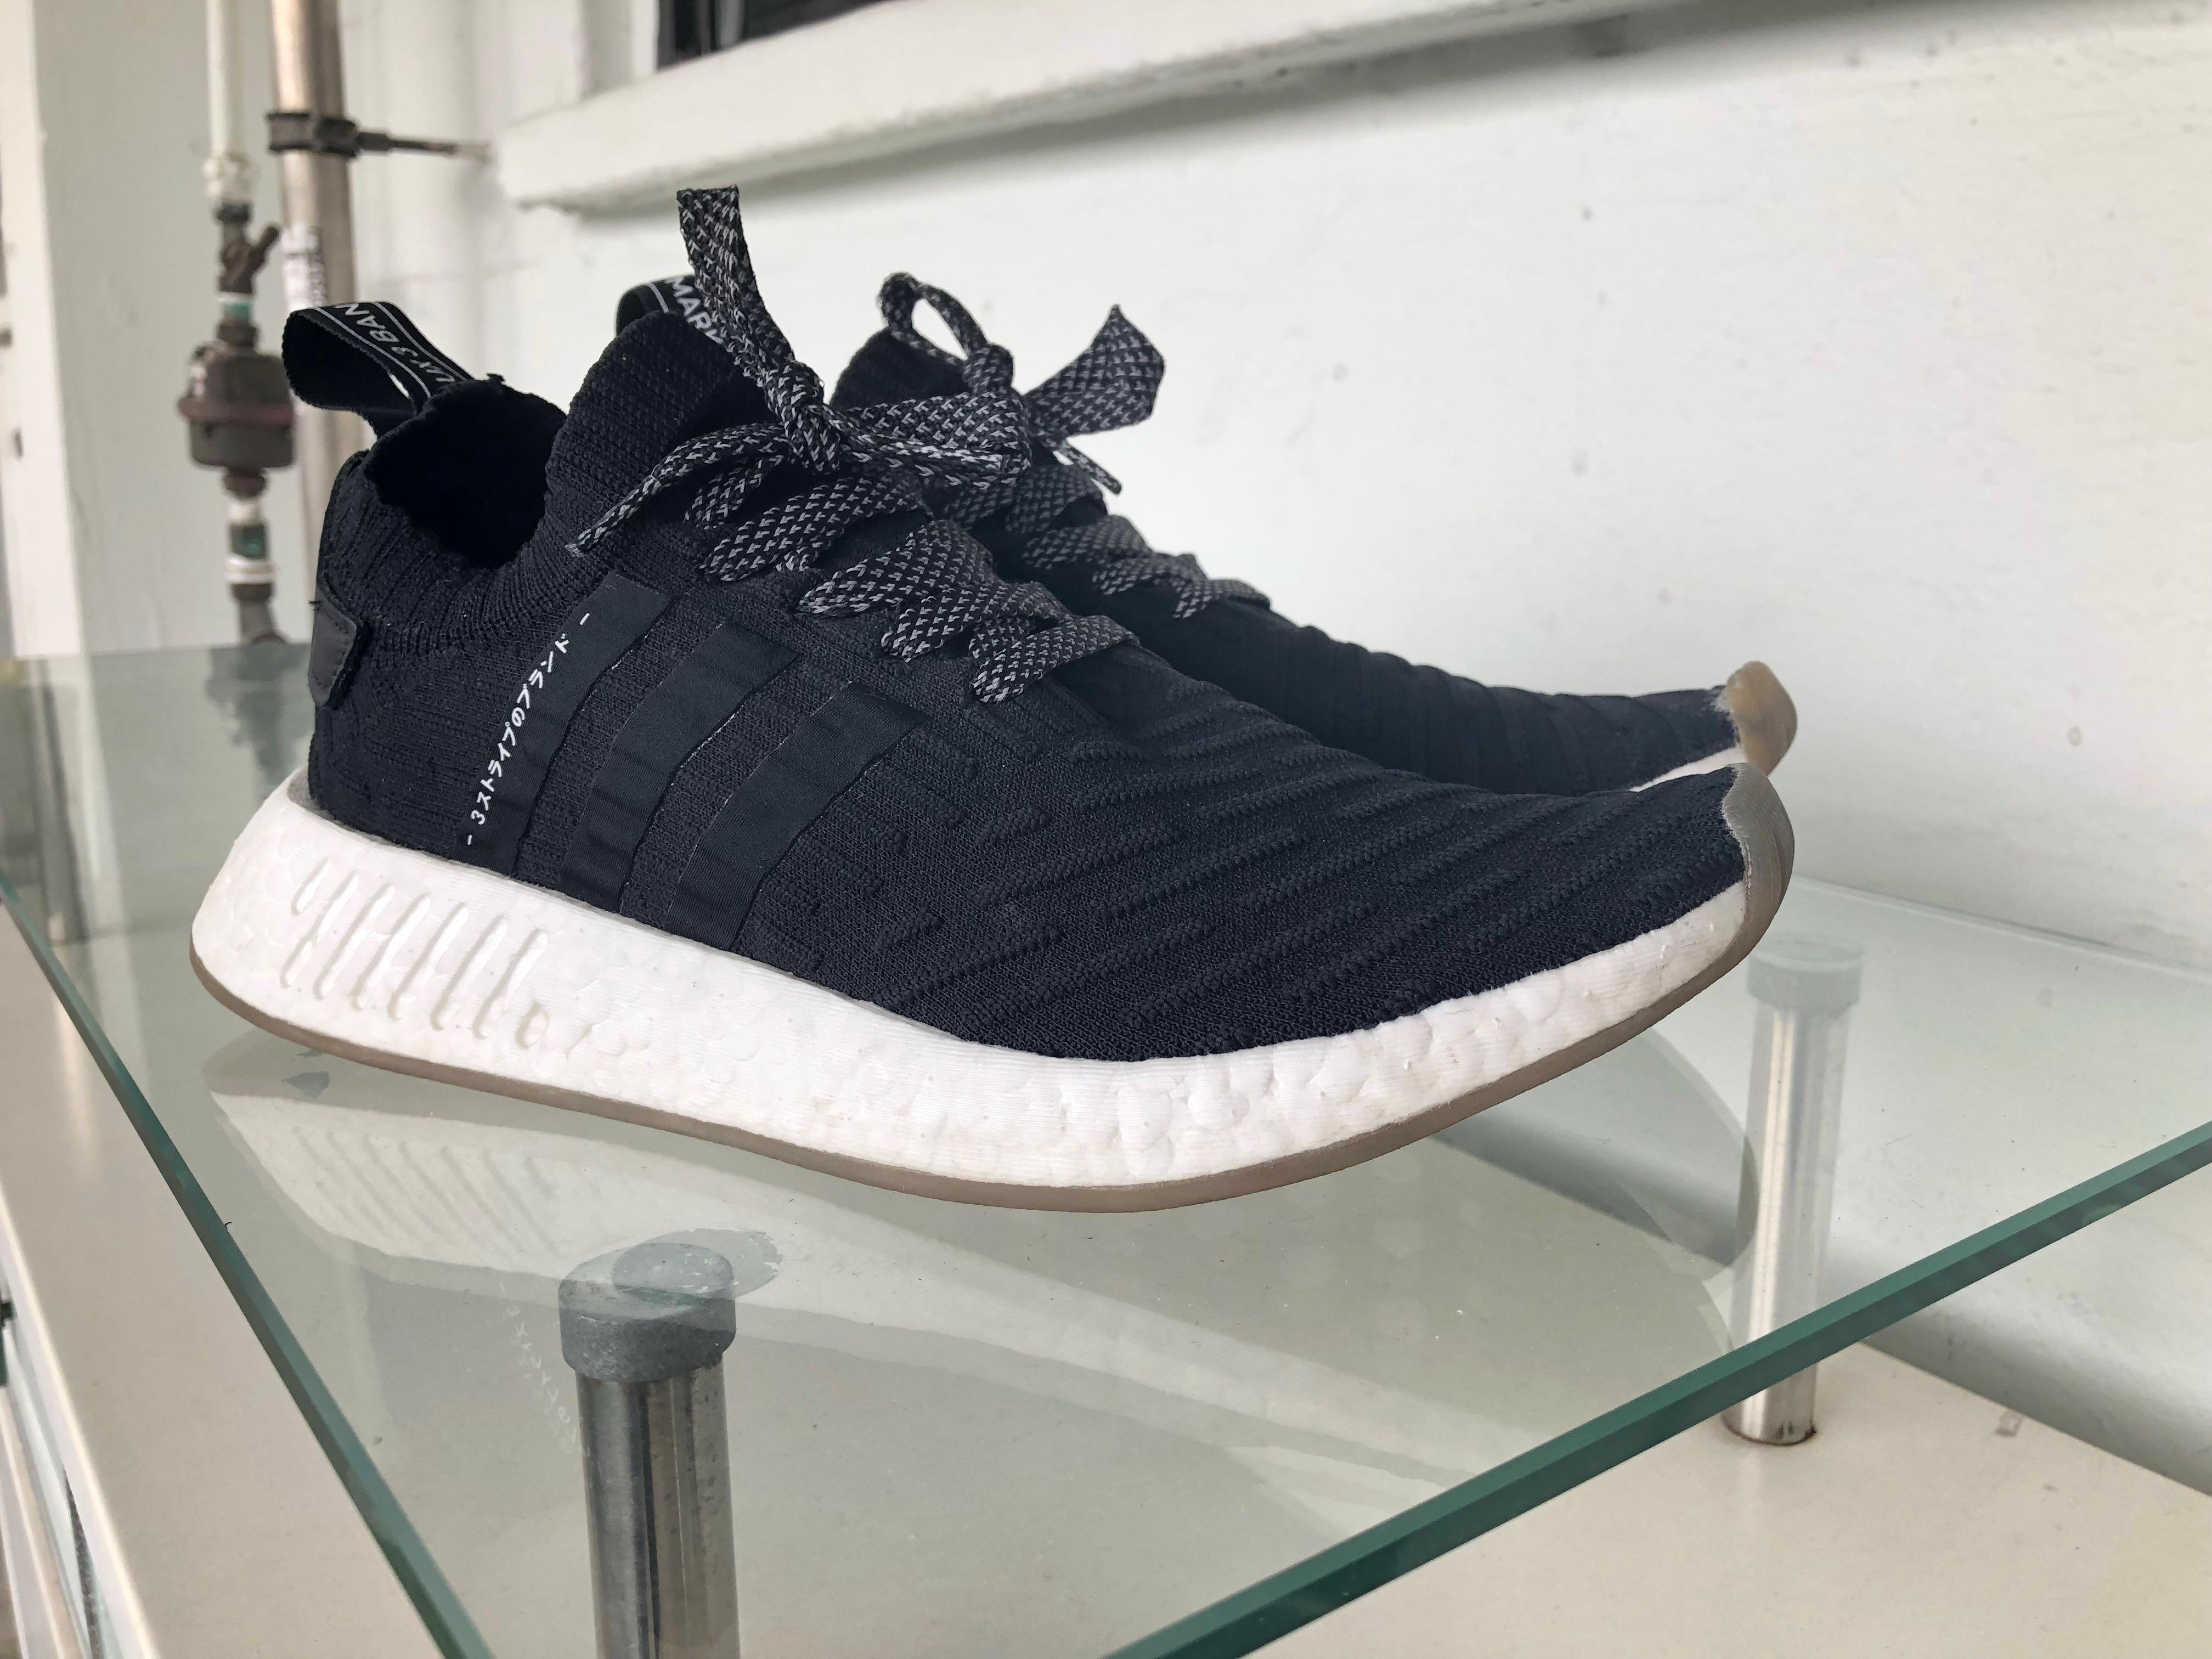 ADIDAS NMD JAPANESE R2 WITH REFLECTIVE